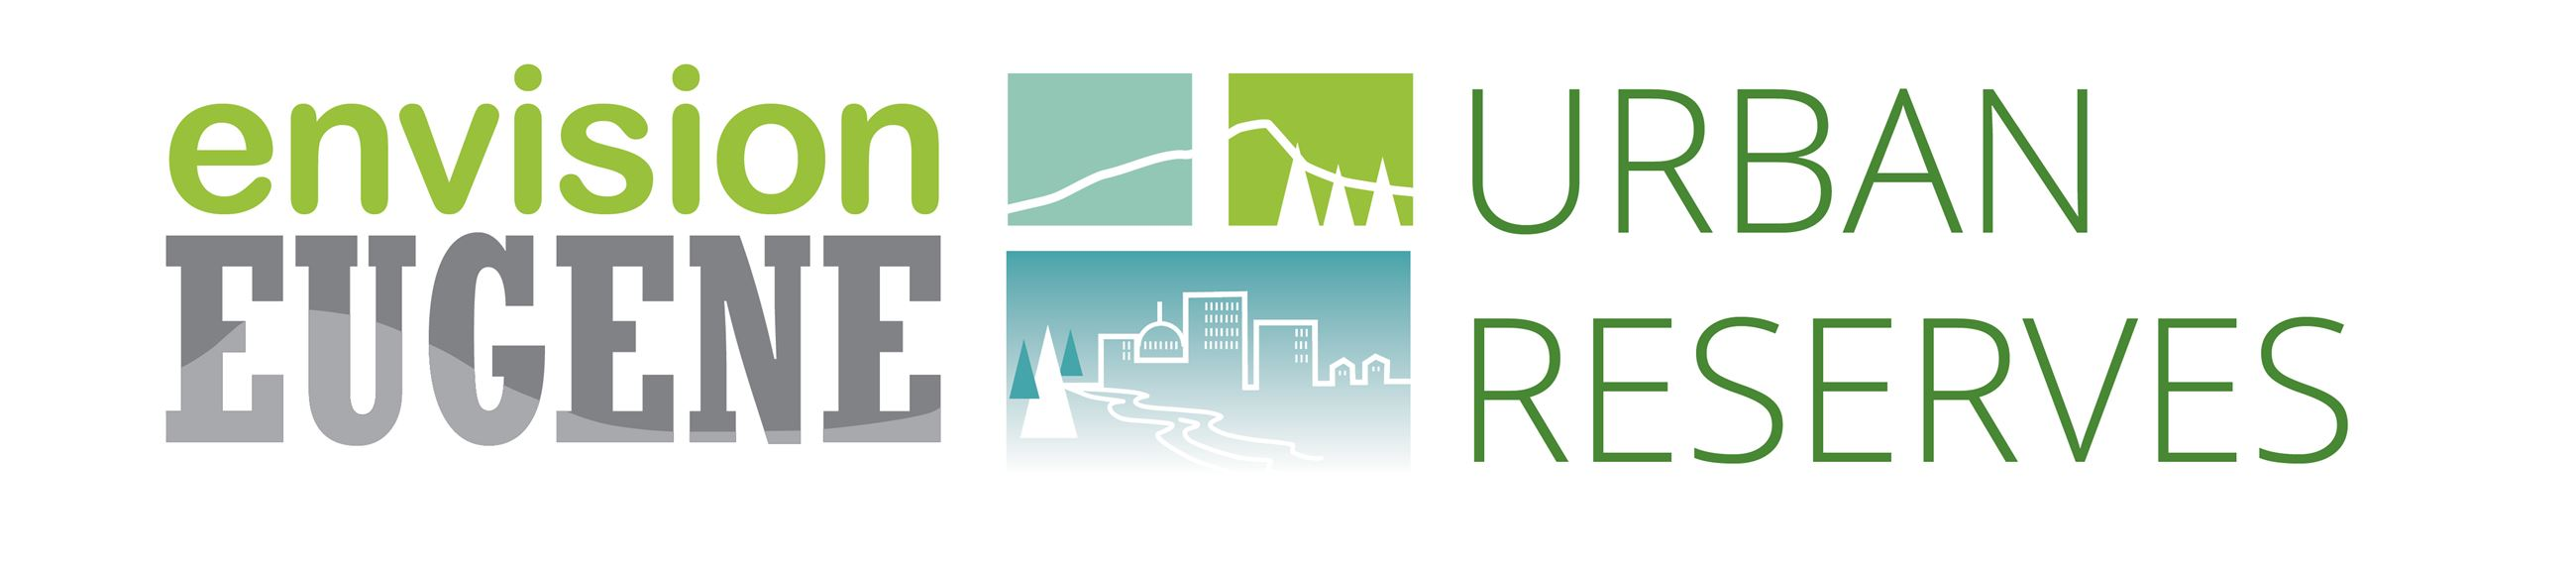 Urban Reserves Logo